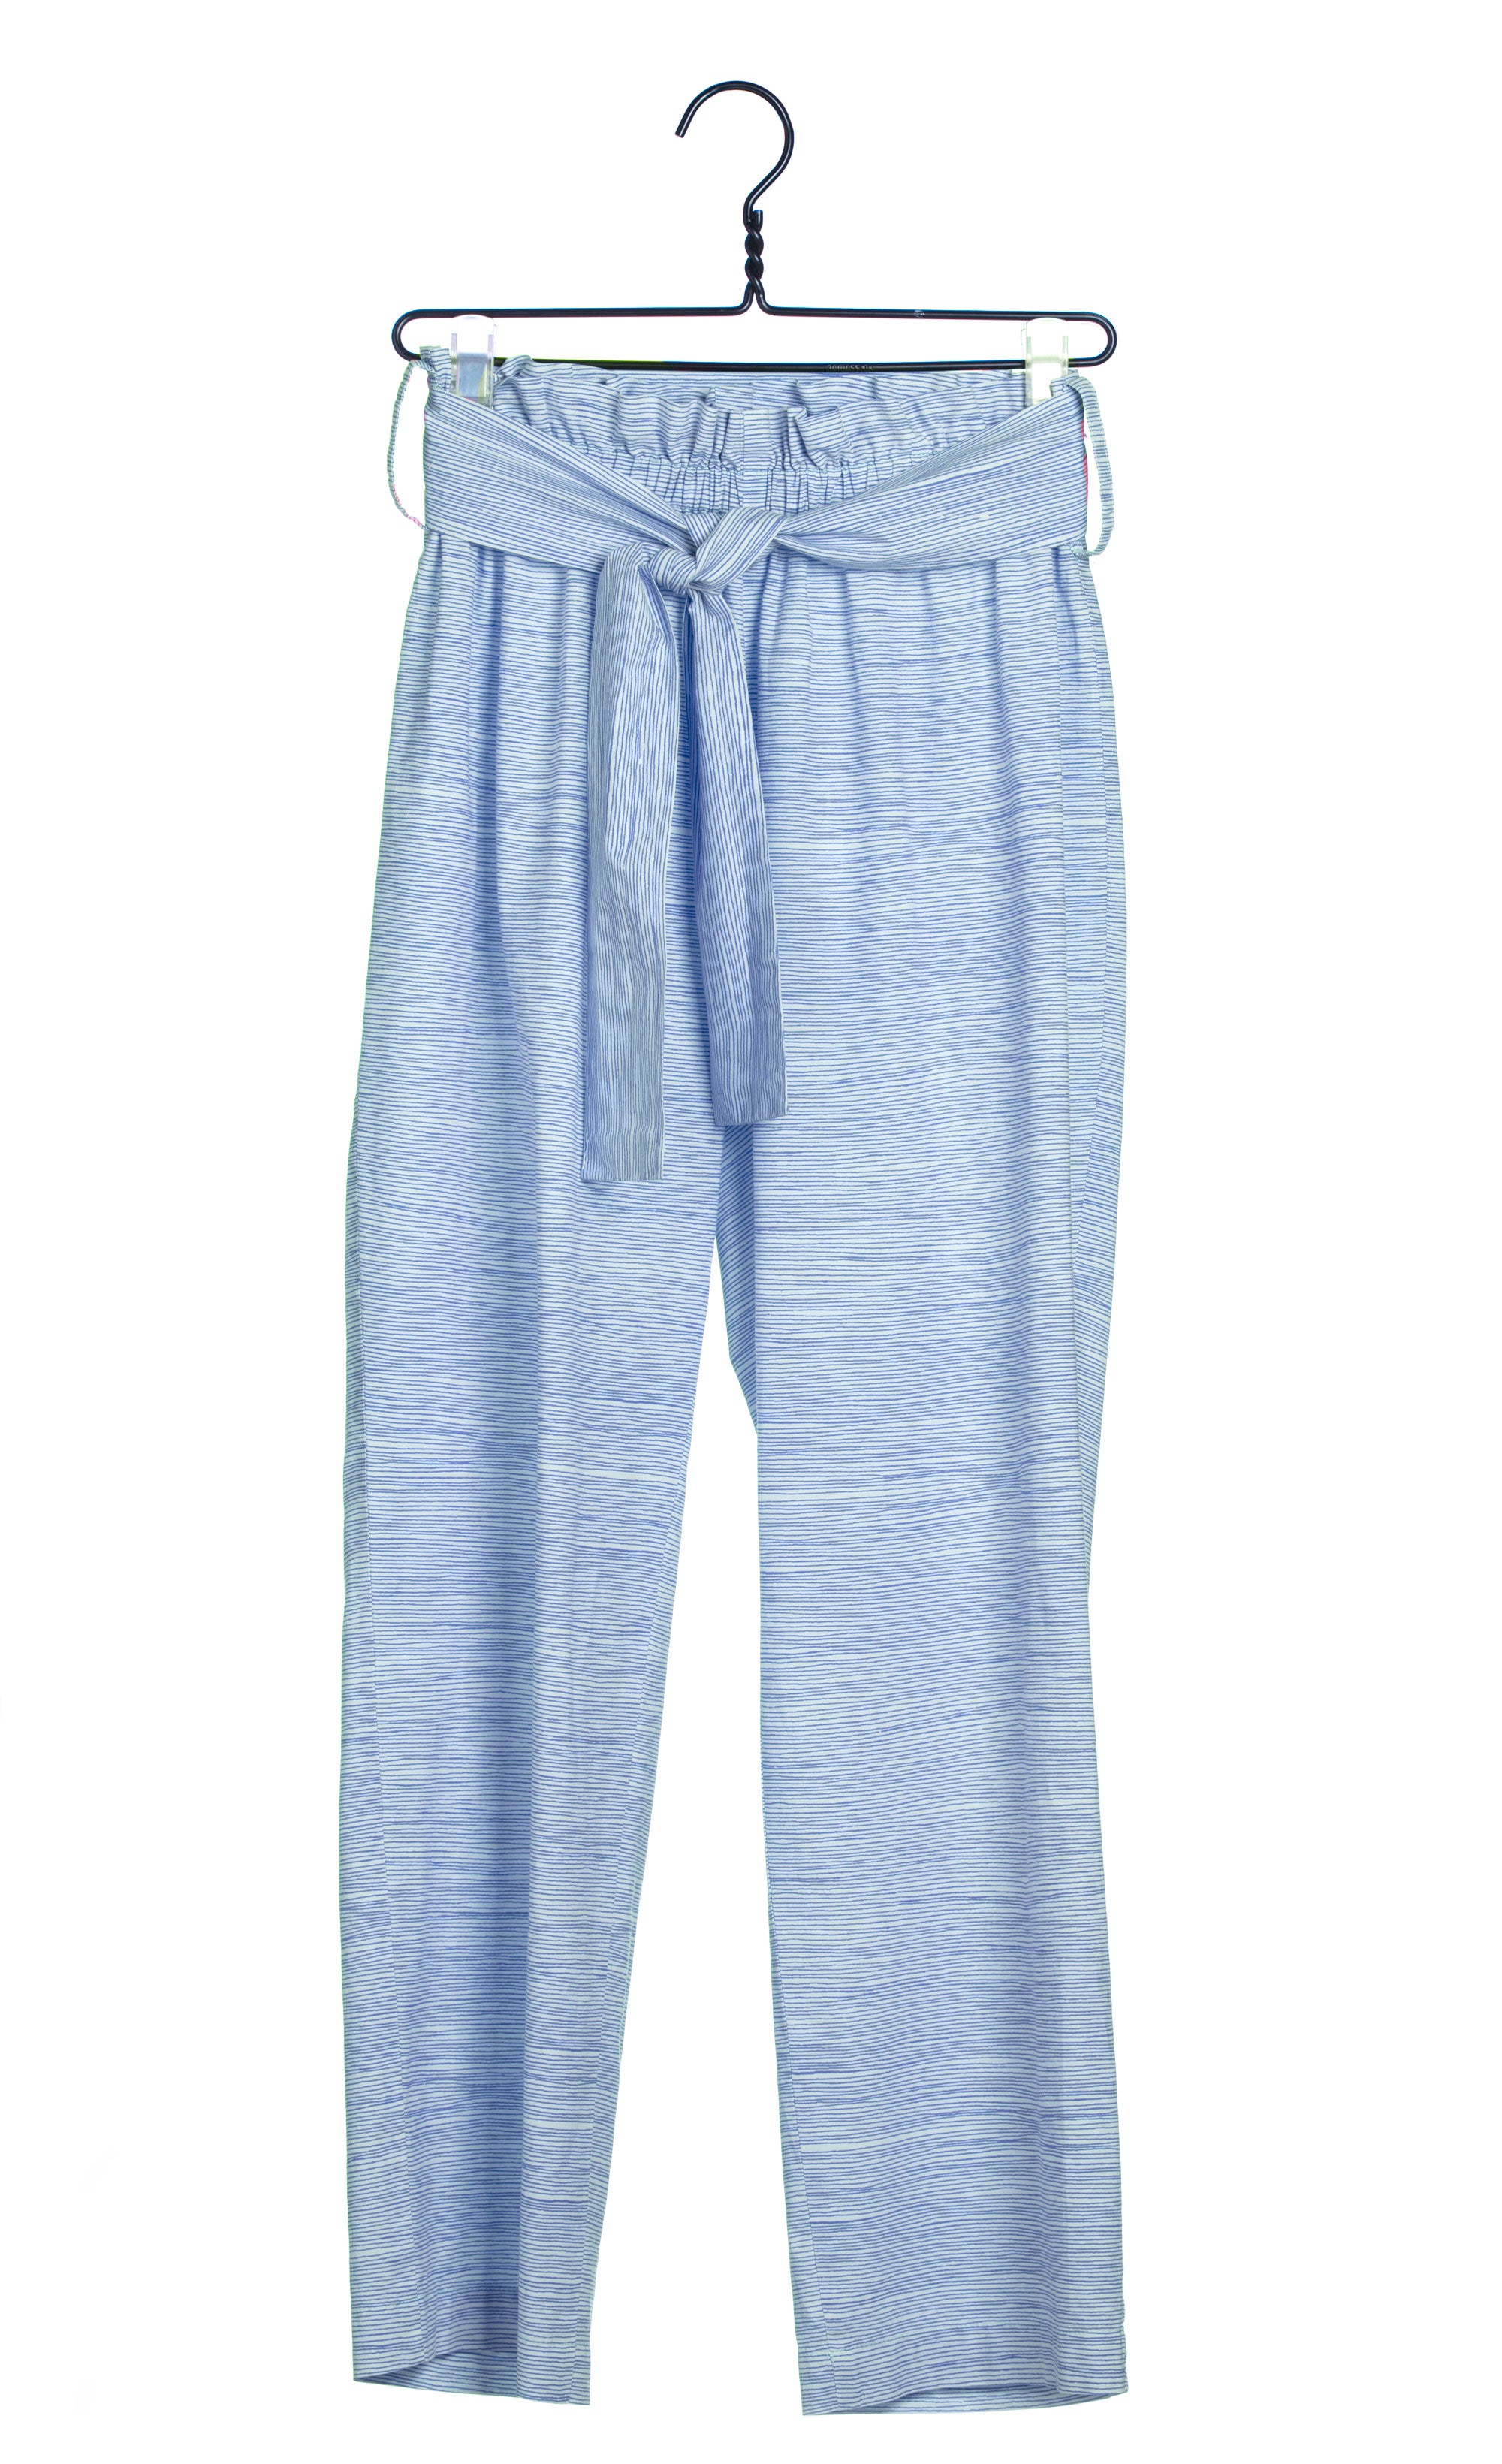 1727 Striped Pants - Blue